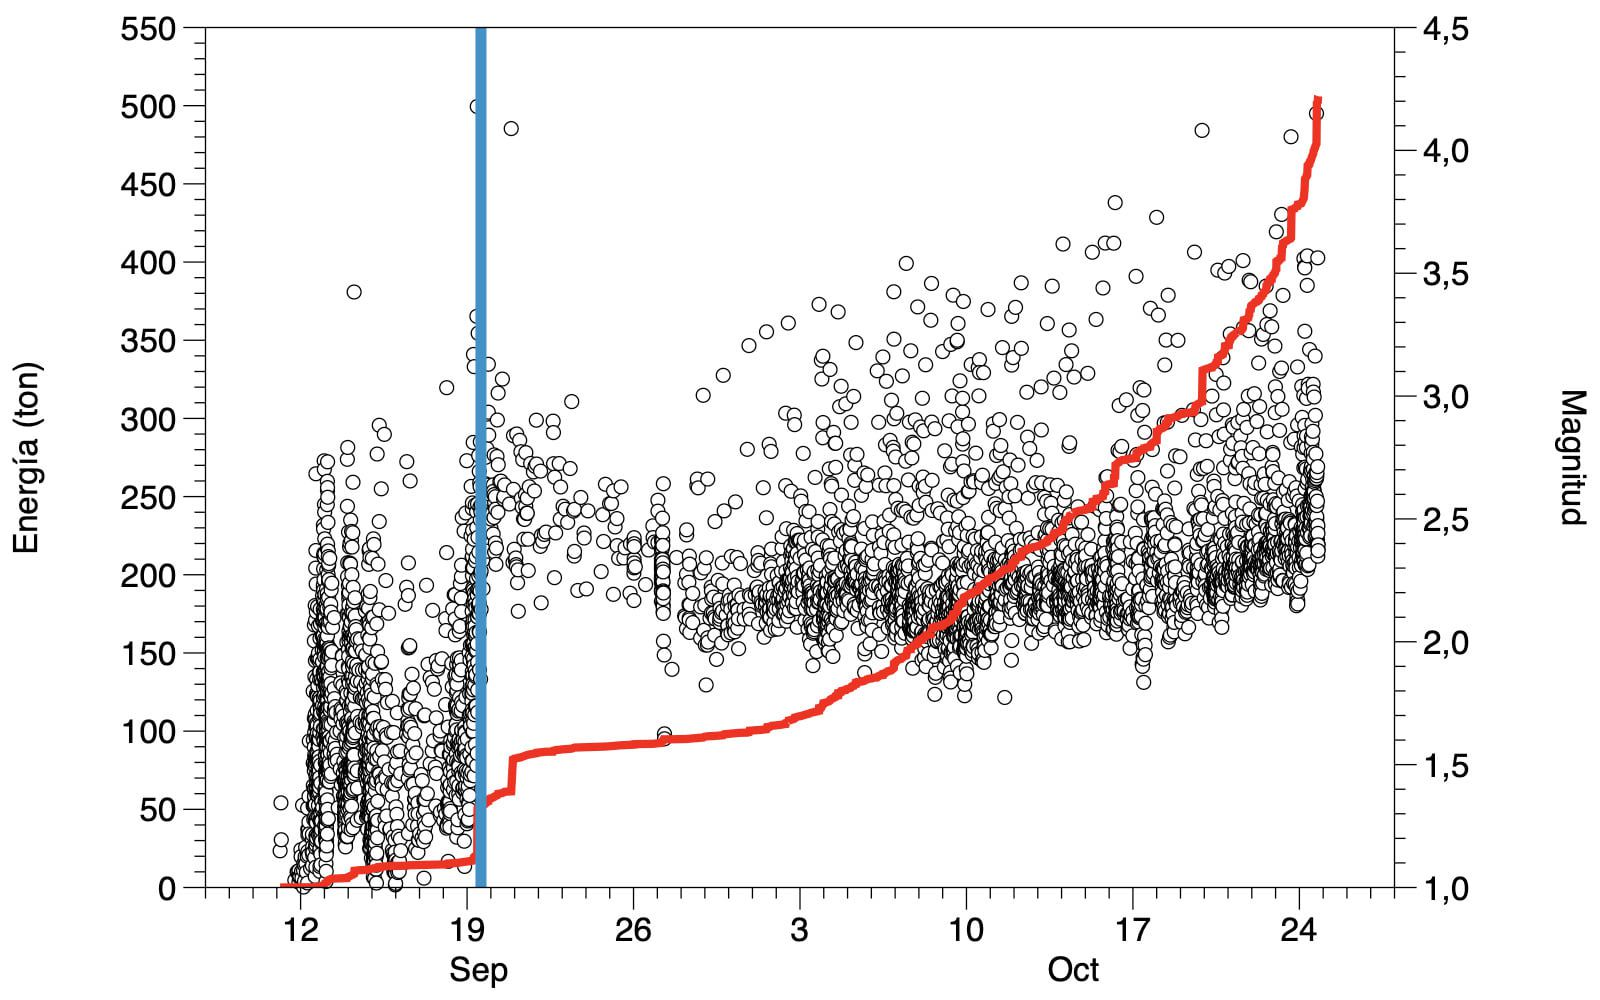 La Palma / Cumbre Vieja - the local magnitudes (Ml, Richter scale) of earthquakes recorded by the Canary Seismic Network managed by the Volcanic Institute of the Canary Islands (INVOLCAN) and the cumulative seismic energy curve, colored in red, expressed in tonnes of TNT. The blue bar indicates the start of the eruption. - one click to enlarge